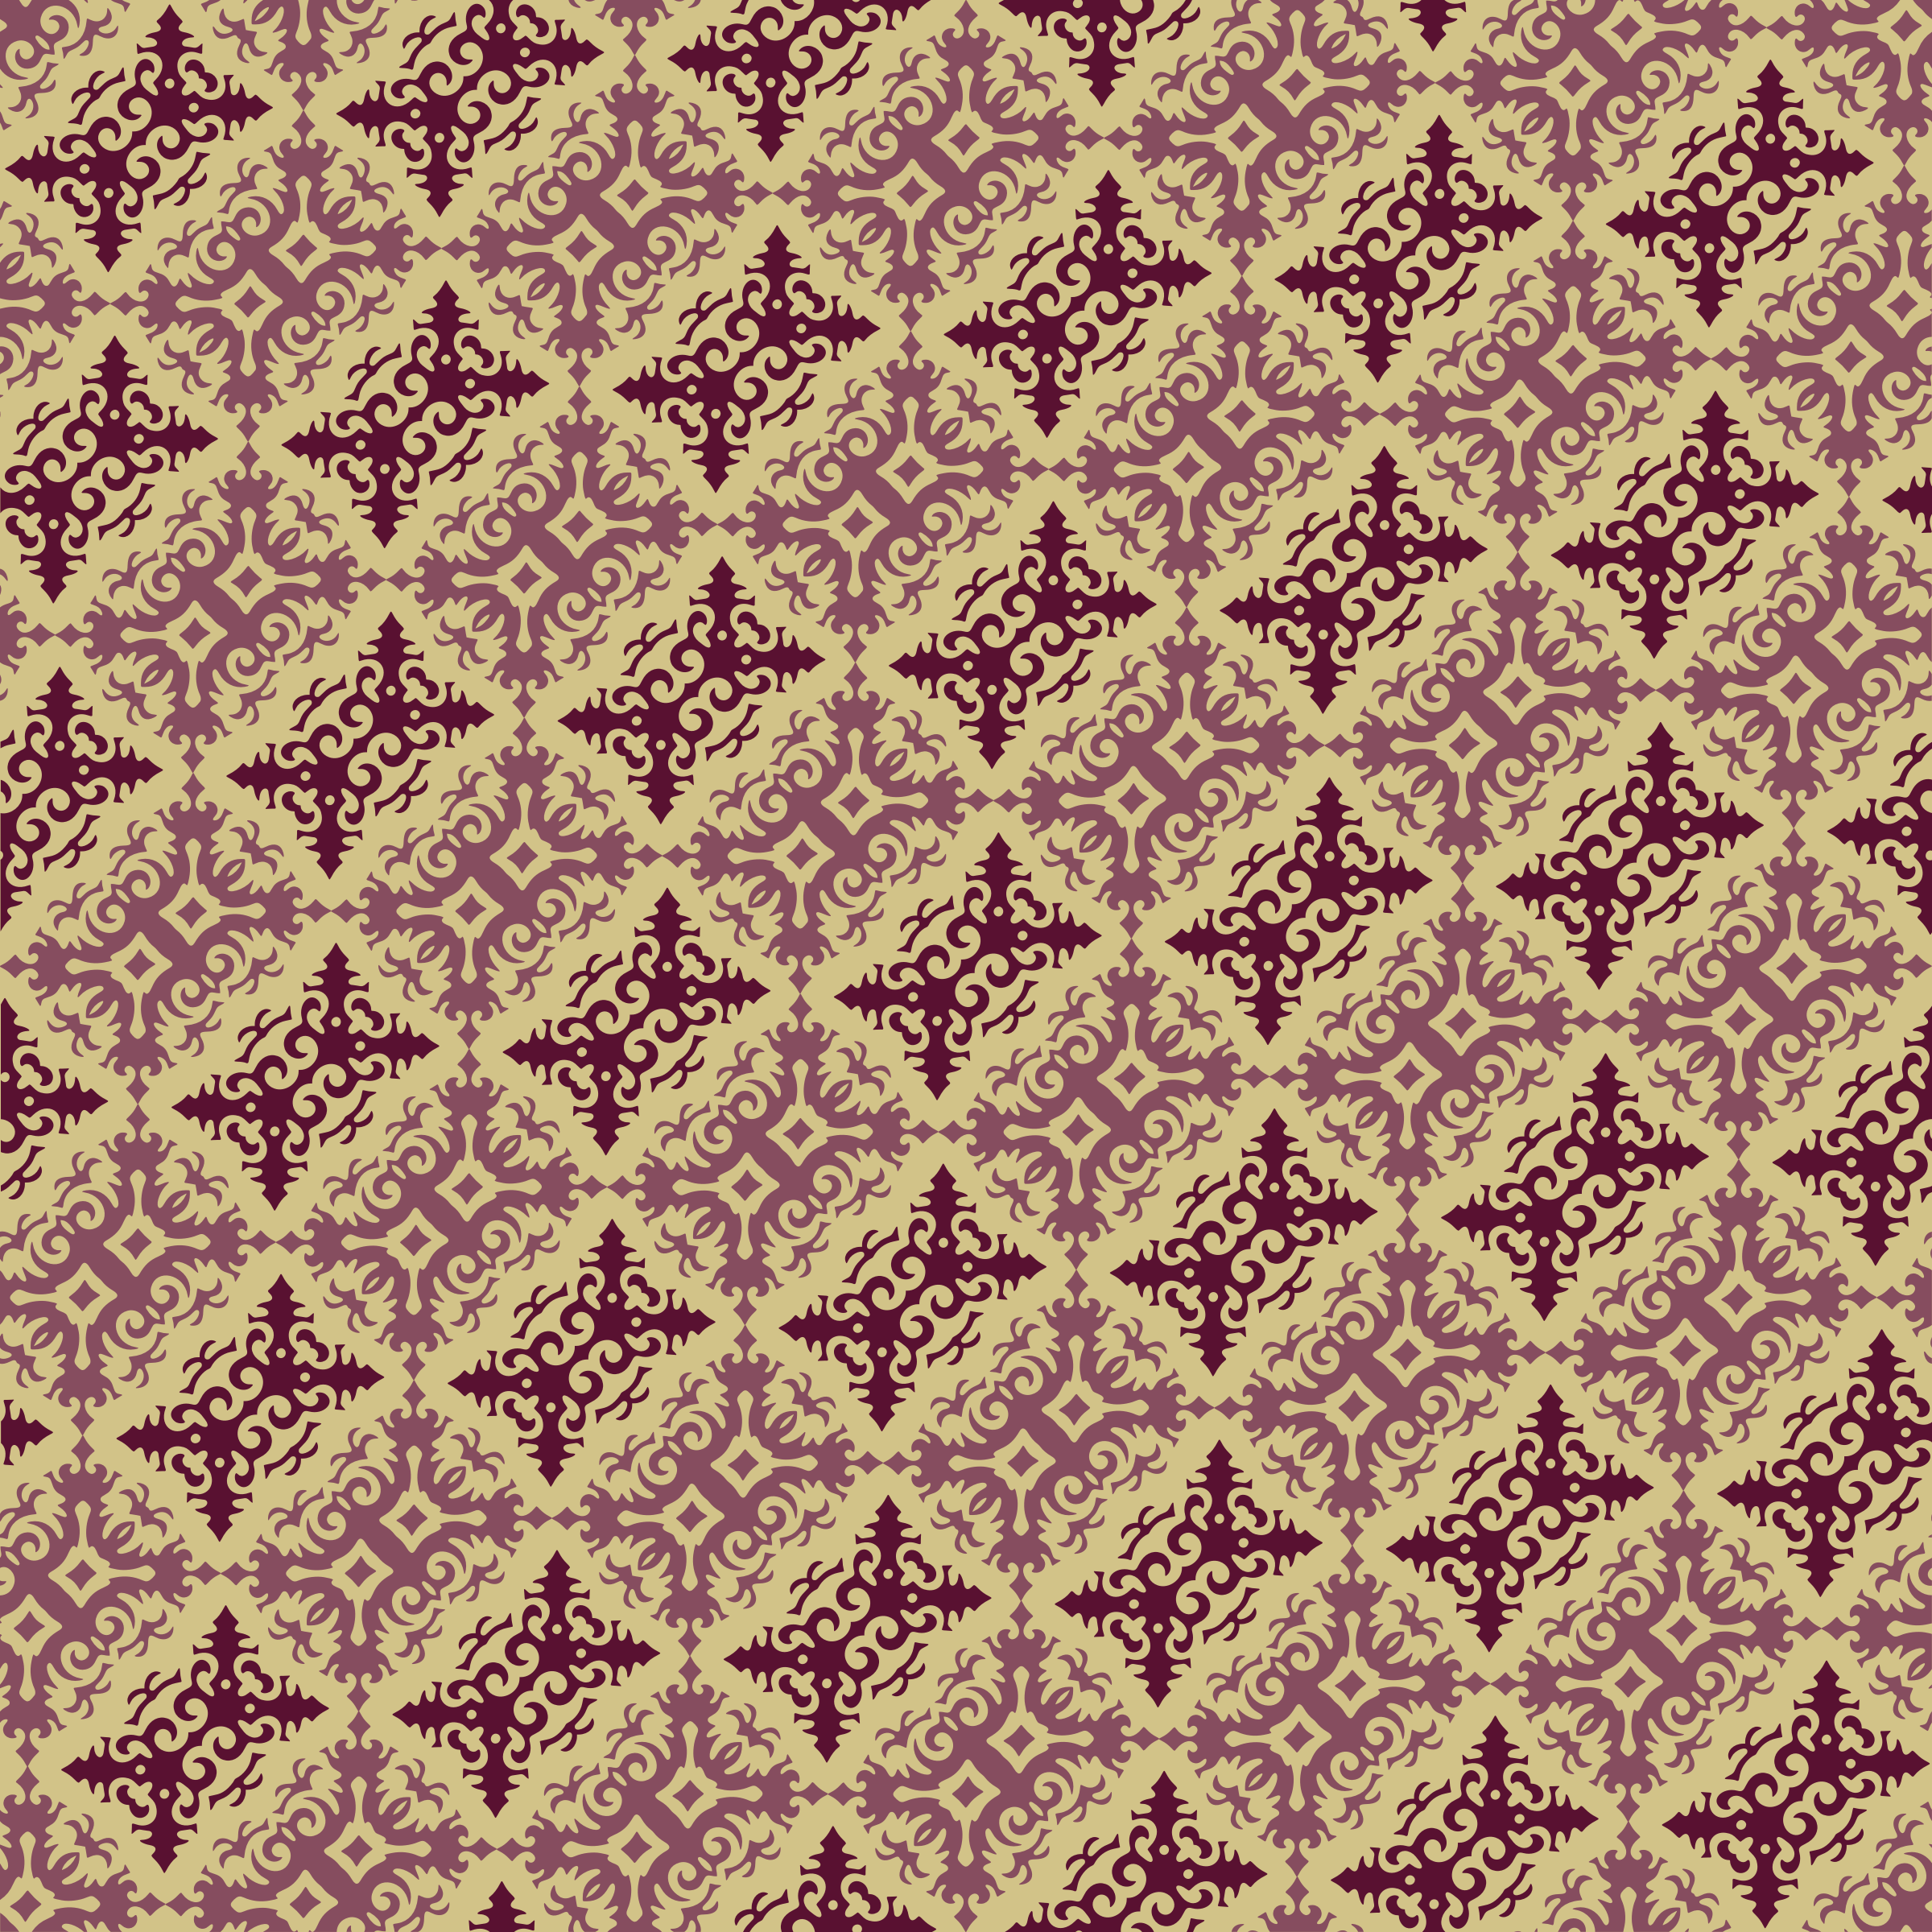 Background pattern 255 (colour 2) by Firkin